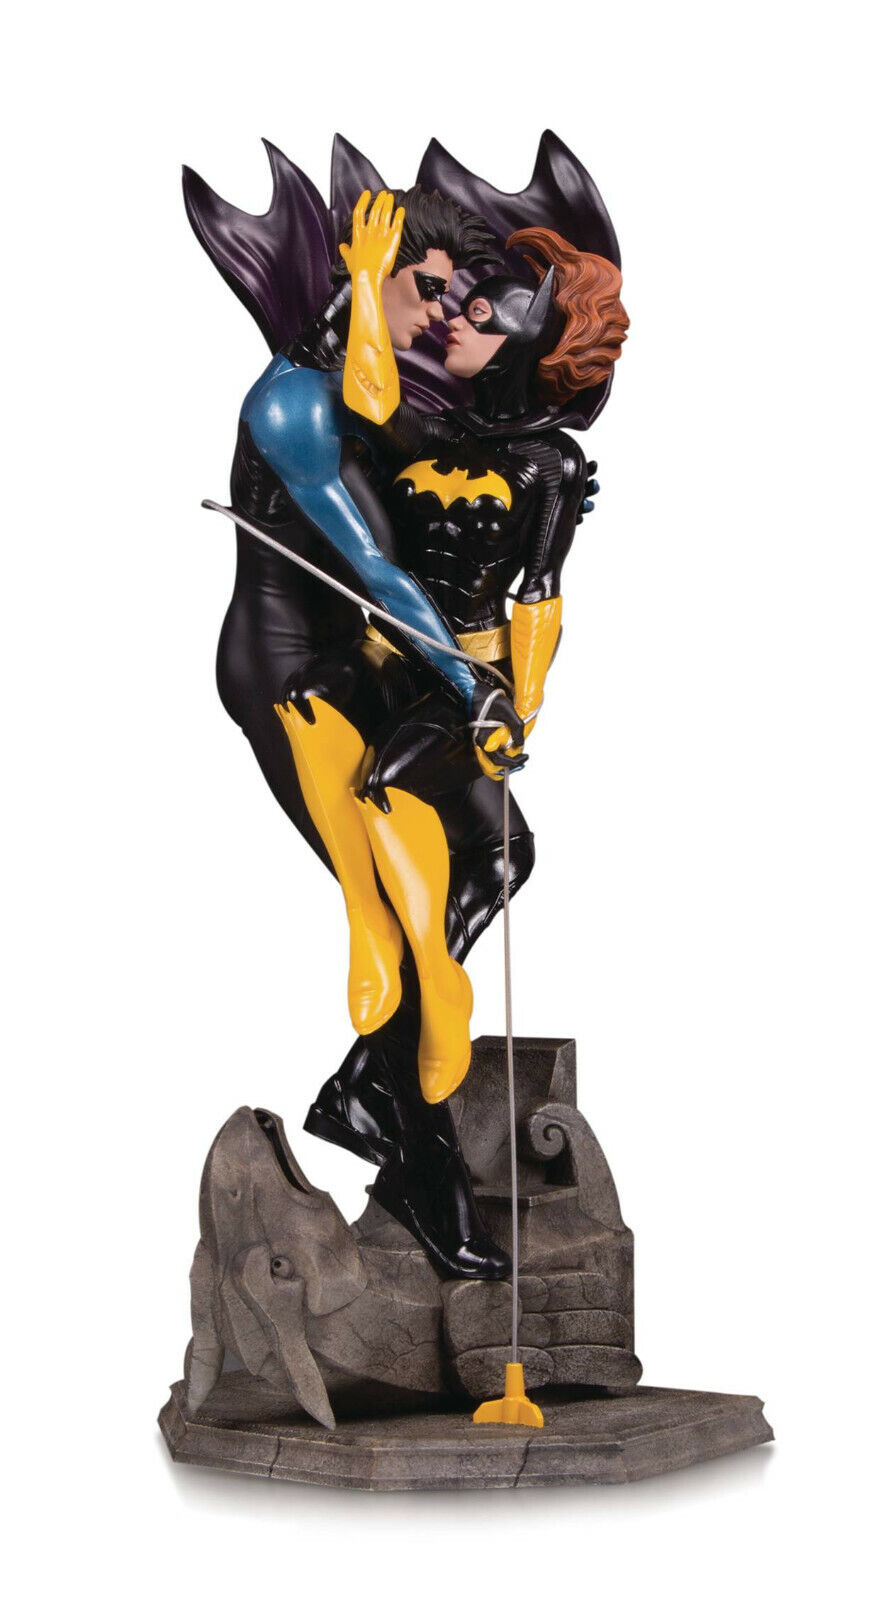 DC Designer Series Nightwing & Batgirl by Sook Hanging Statue MINT NEW IN BOX